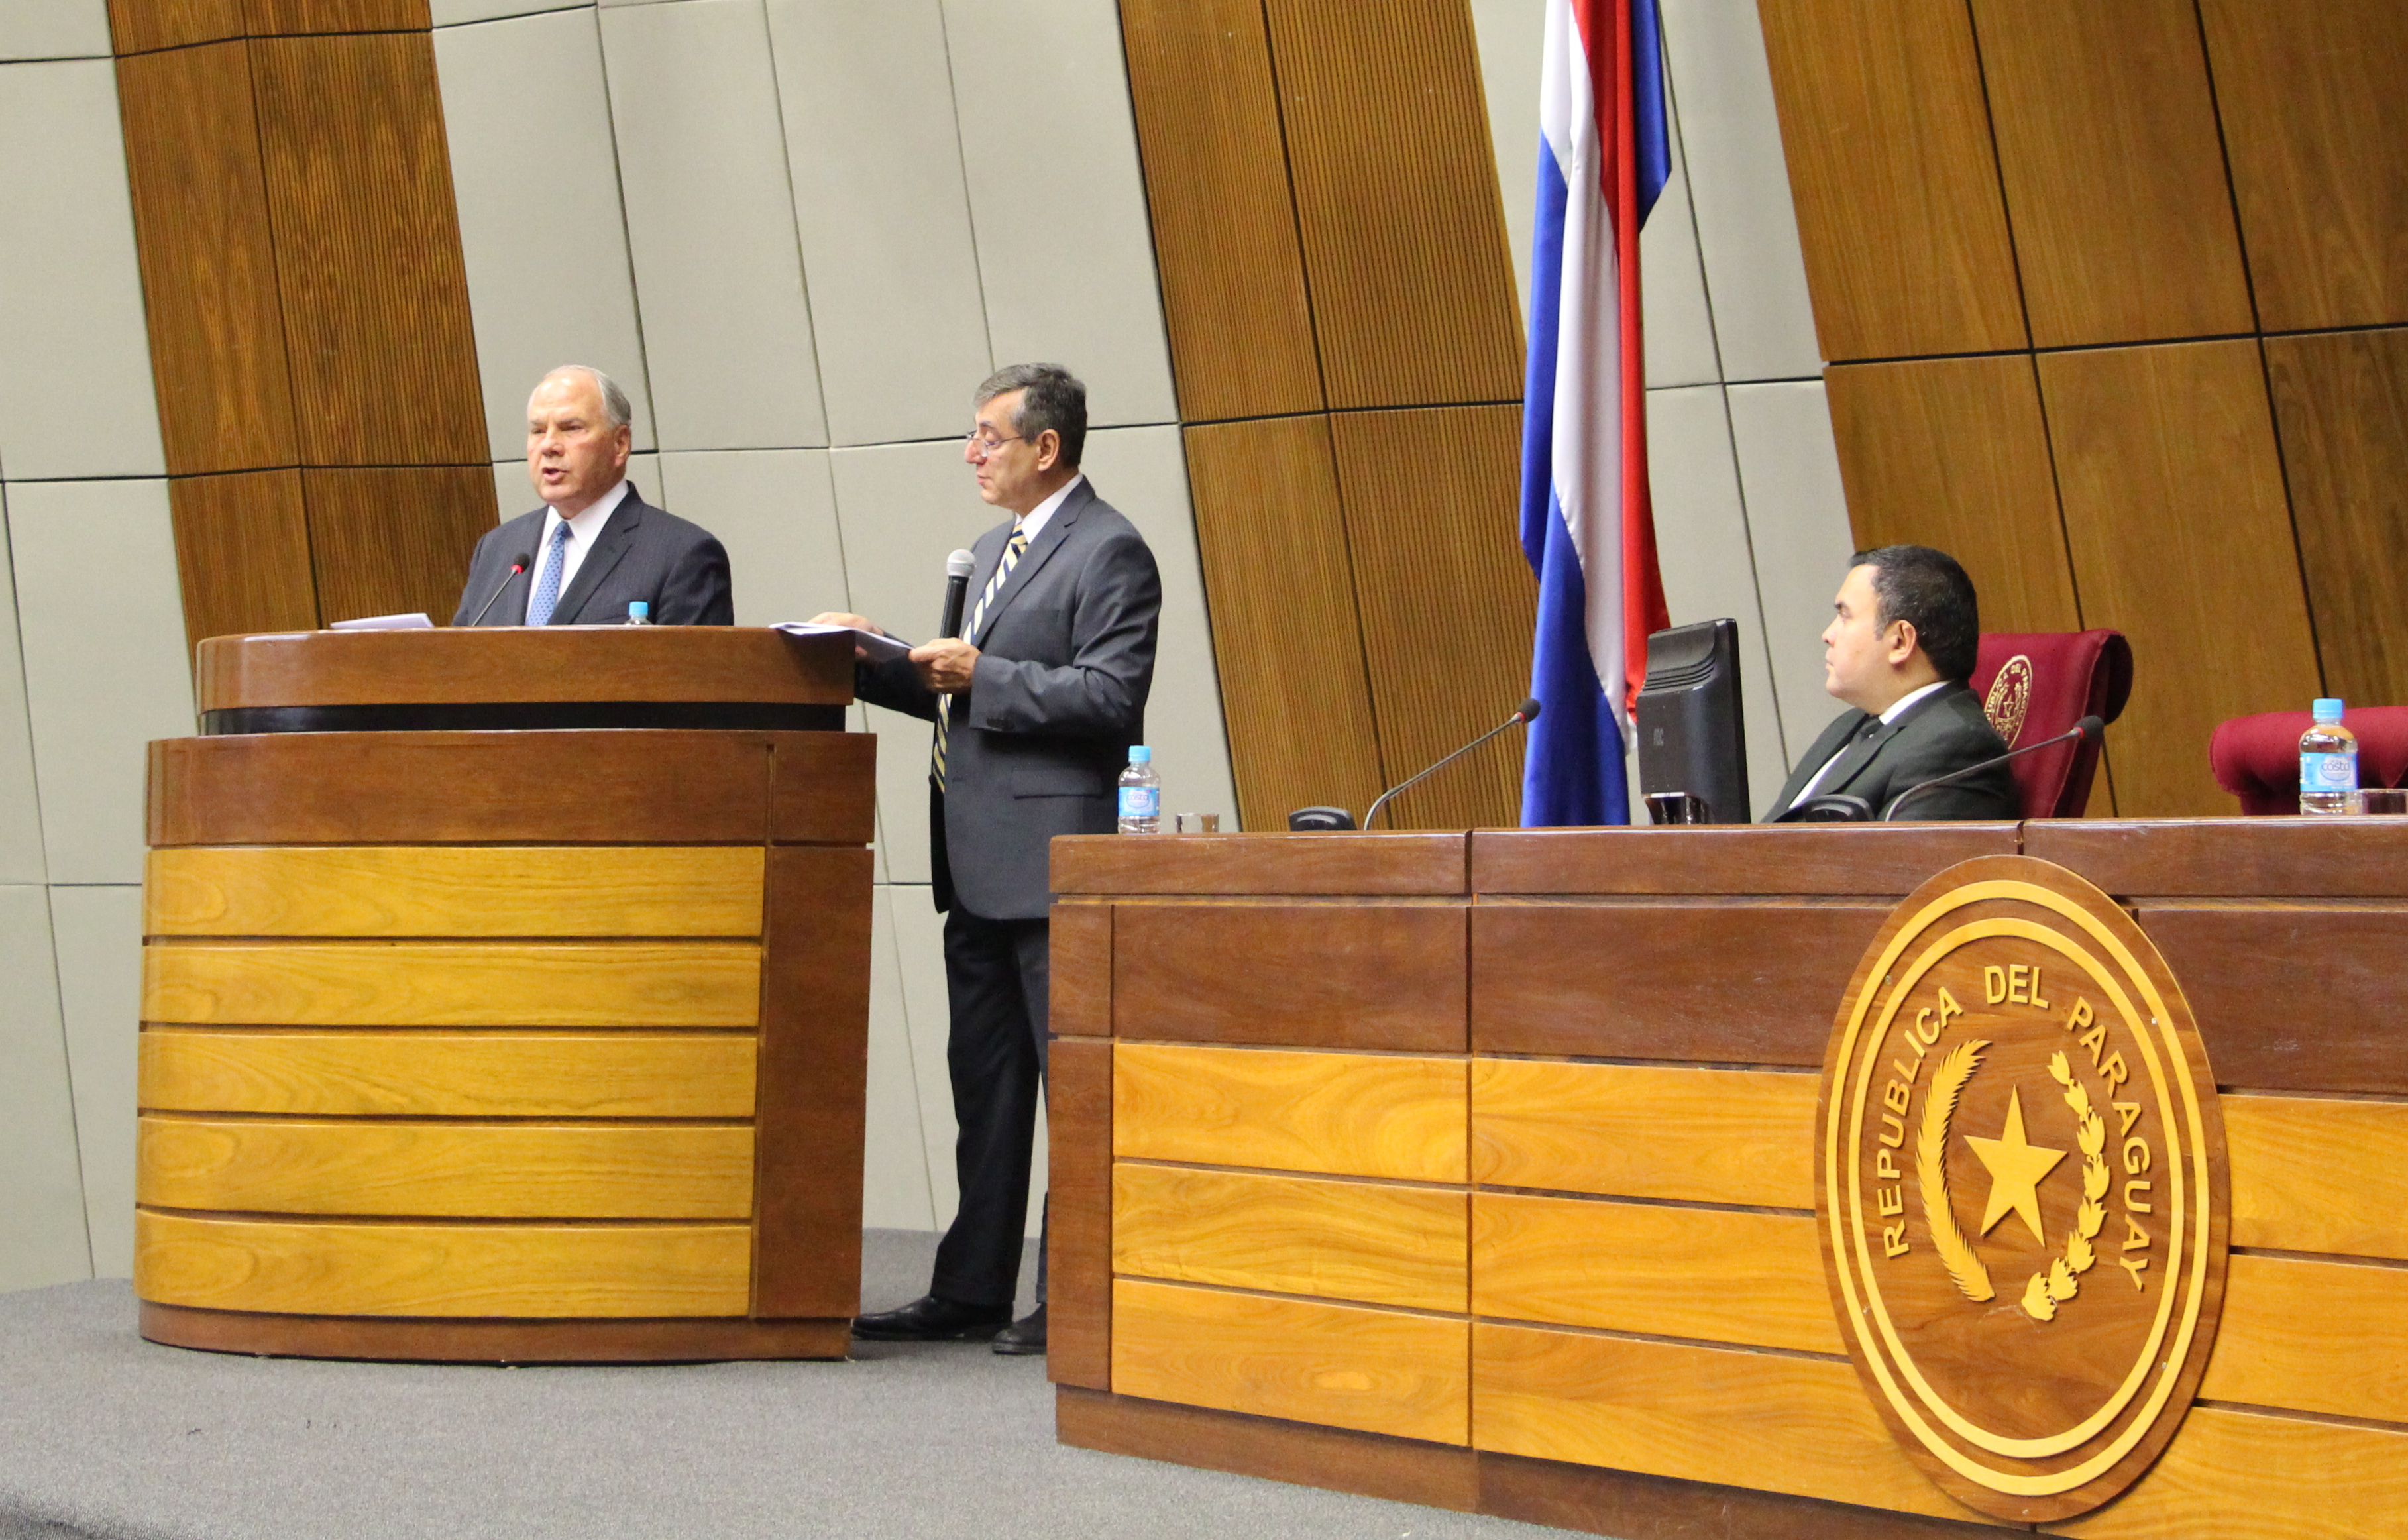 Elder Ronald A. Rasband of the Quorum of the Twelve Apostles, left, gives his keynote address on the pillar of religious freedom and the pillar of the family at the Aug. 30, 2018, Symposium of Strengthening Society Through Strong Families in Asunción, Paraguay. Held at the Palace of Congress and sponsored by the government's Ministry of Education and Sciences, the event drew religious, government and academic leaders for the multi-day seminar.